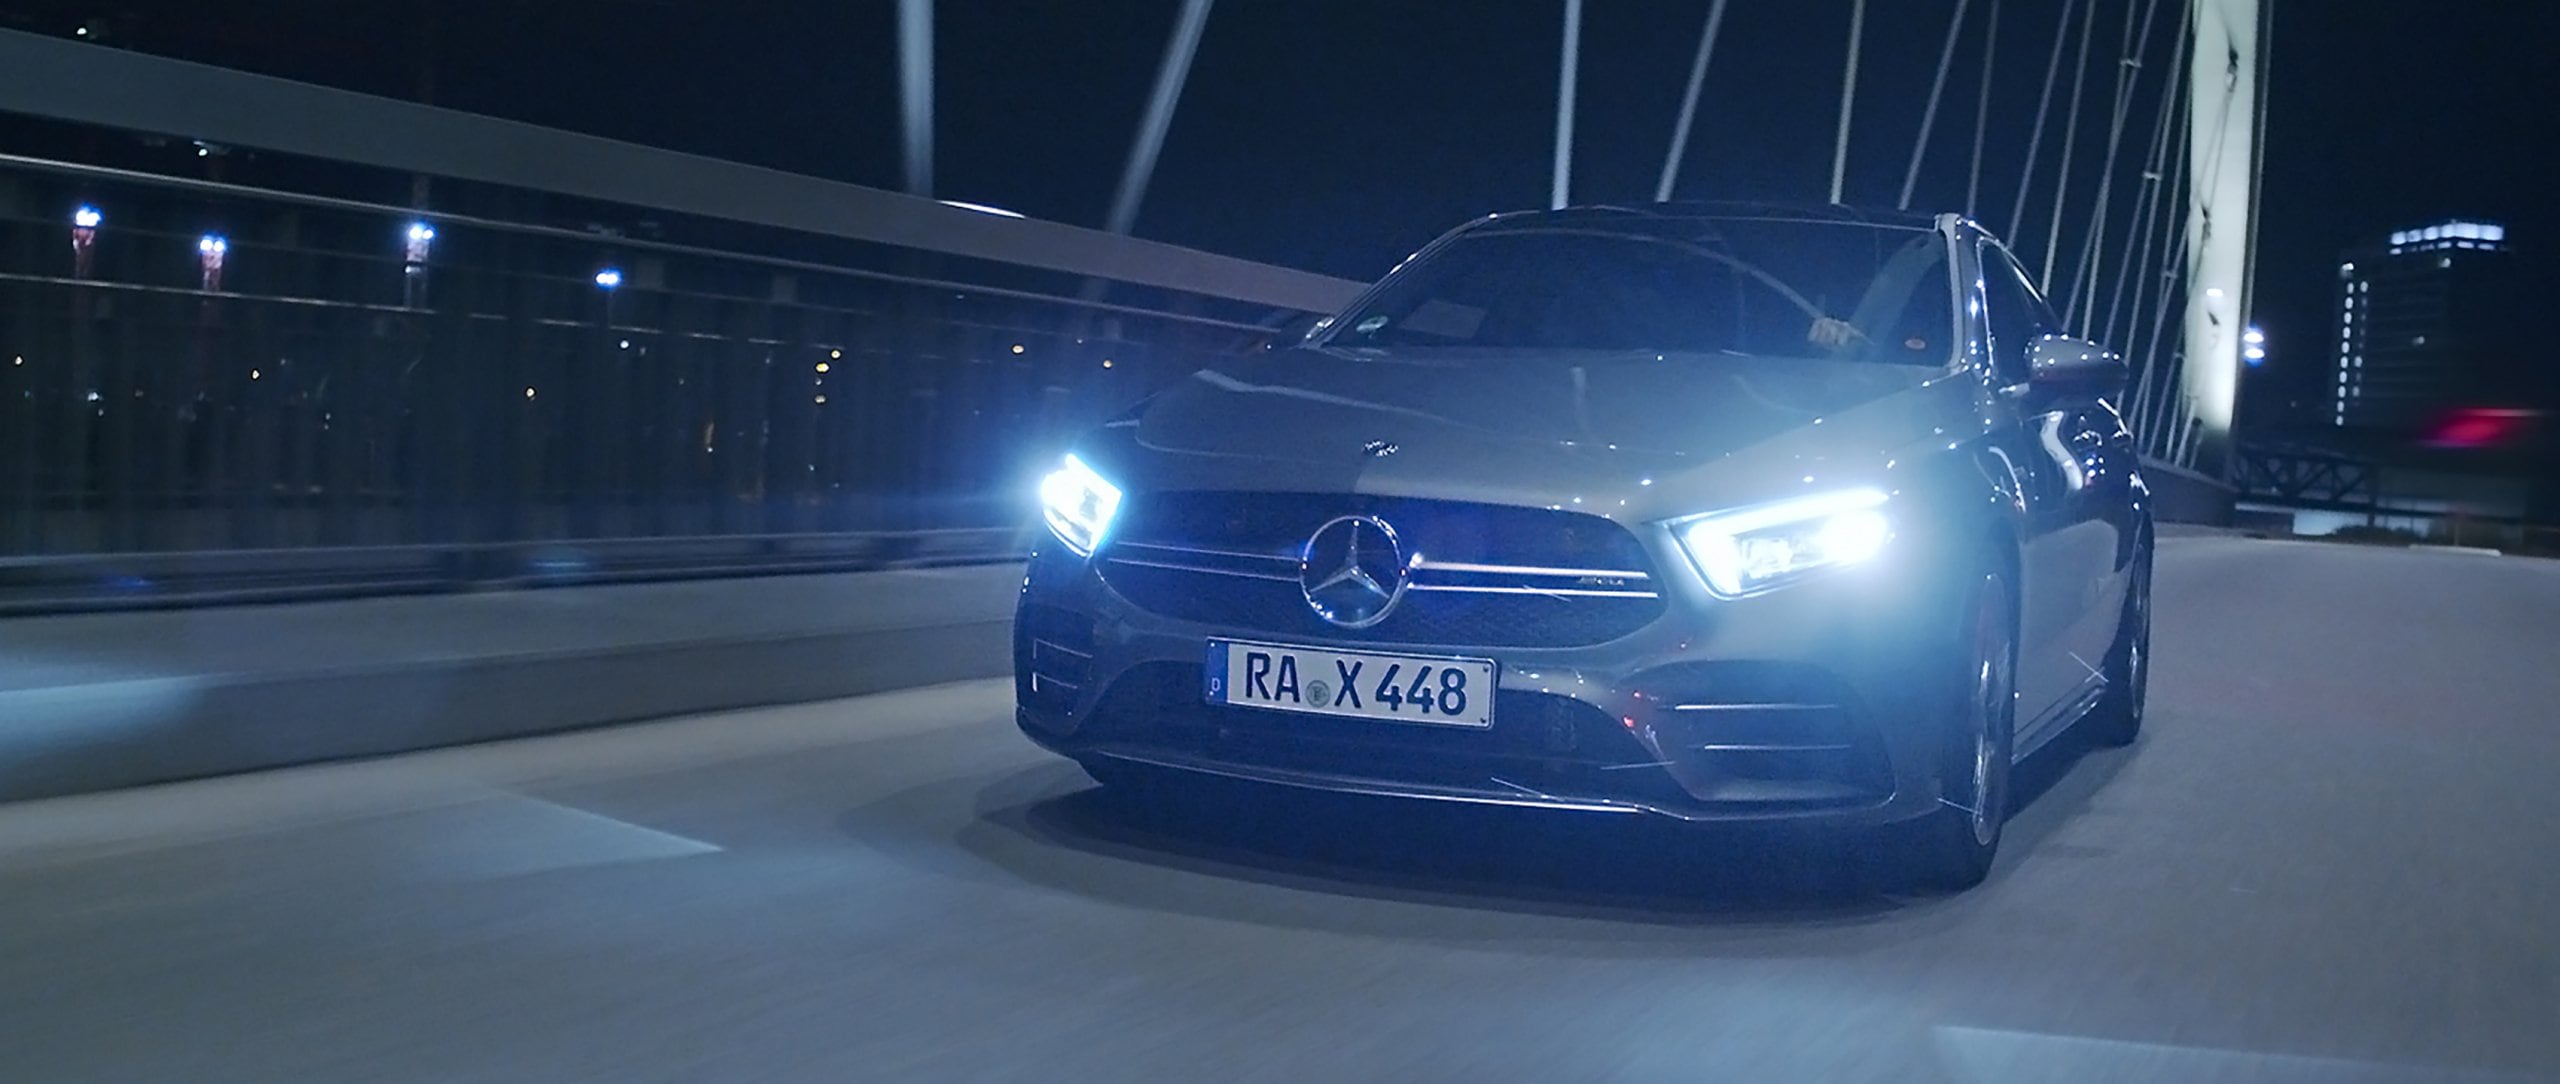 The Mercedes-AMG A 35 4MATIC Saloon on a road at night.